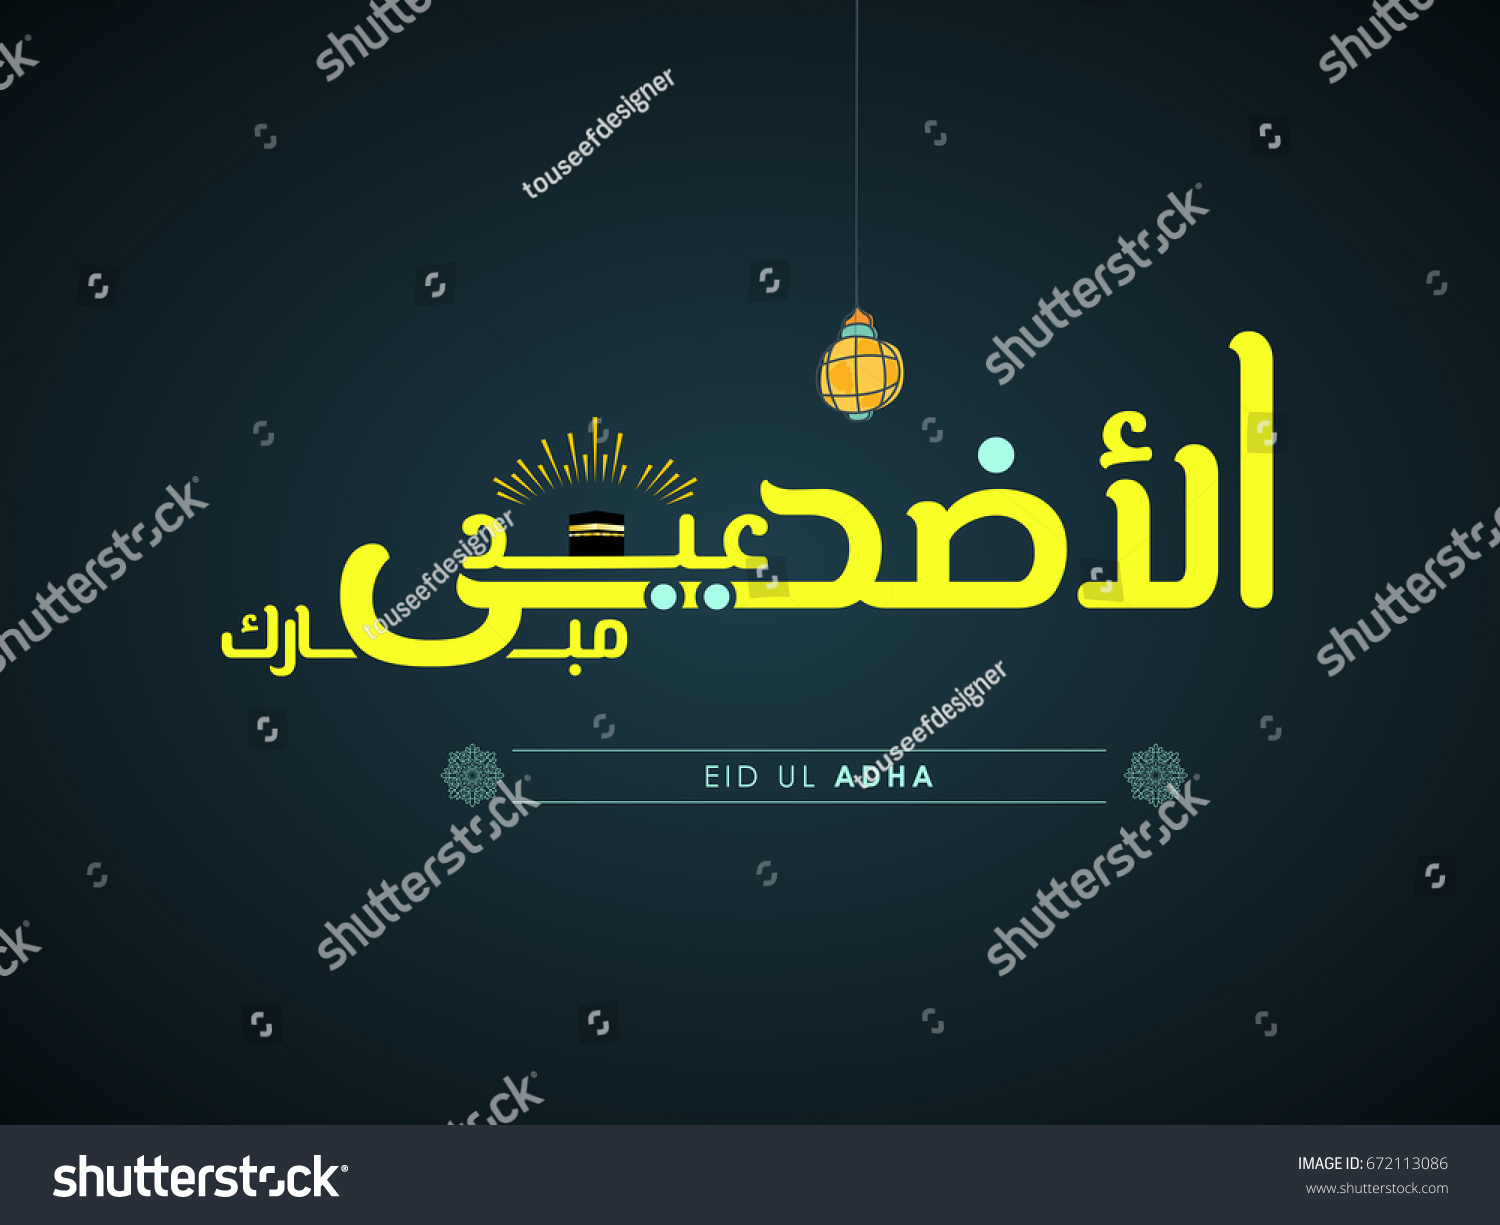 Eid adha mubarak written arabic calligraphy stock vector 672113086 eid adha mubarak written in arabic calligraphy useful for greeting card and wishing the eid adha kristyandbryce Image collections